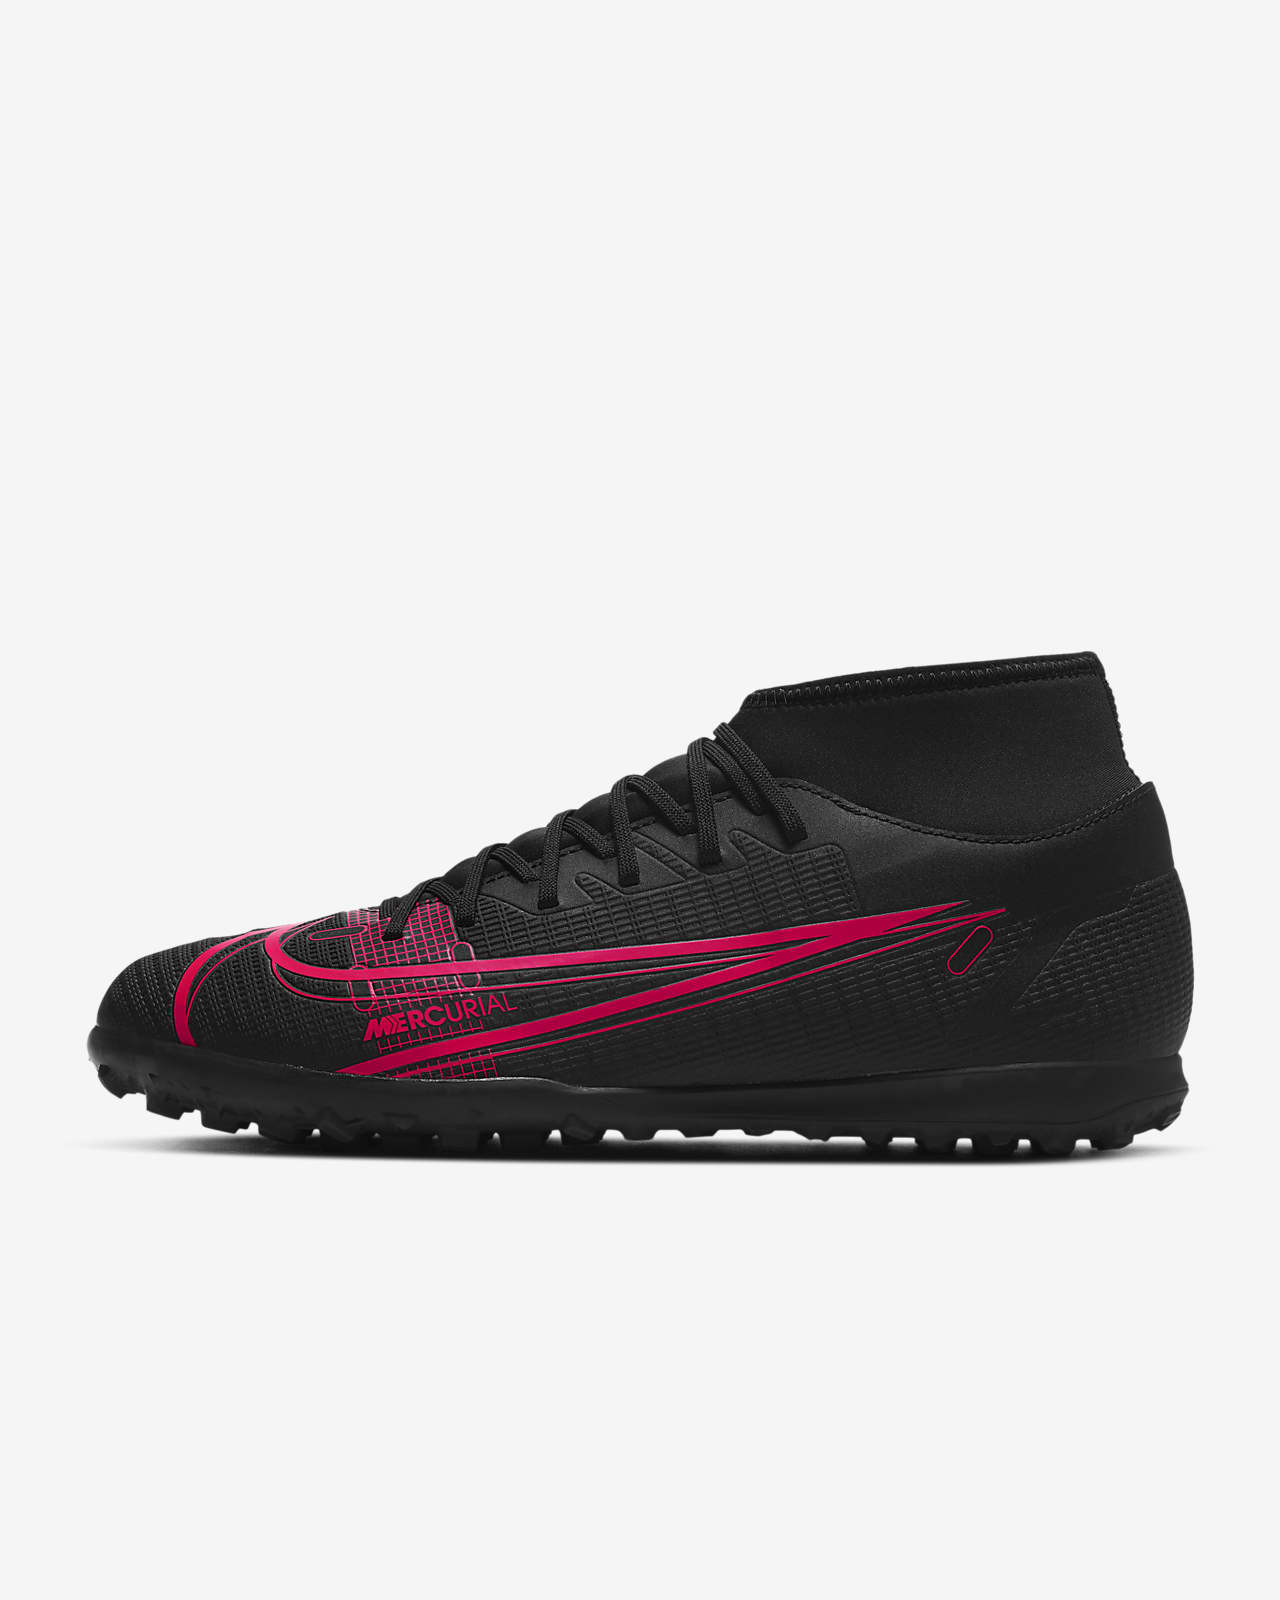 Chaussure de football pour surface synthétique Nike Mercurial Superfly 8 Club TF